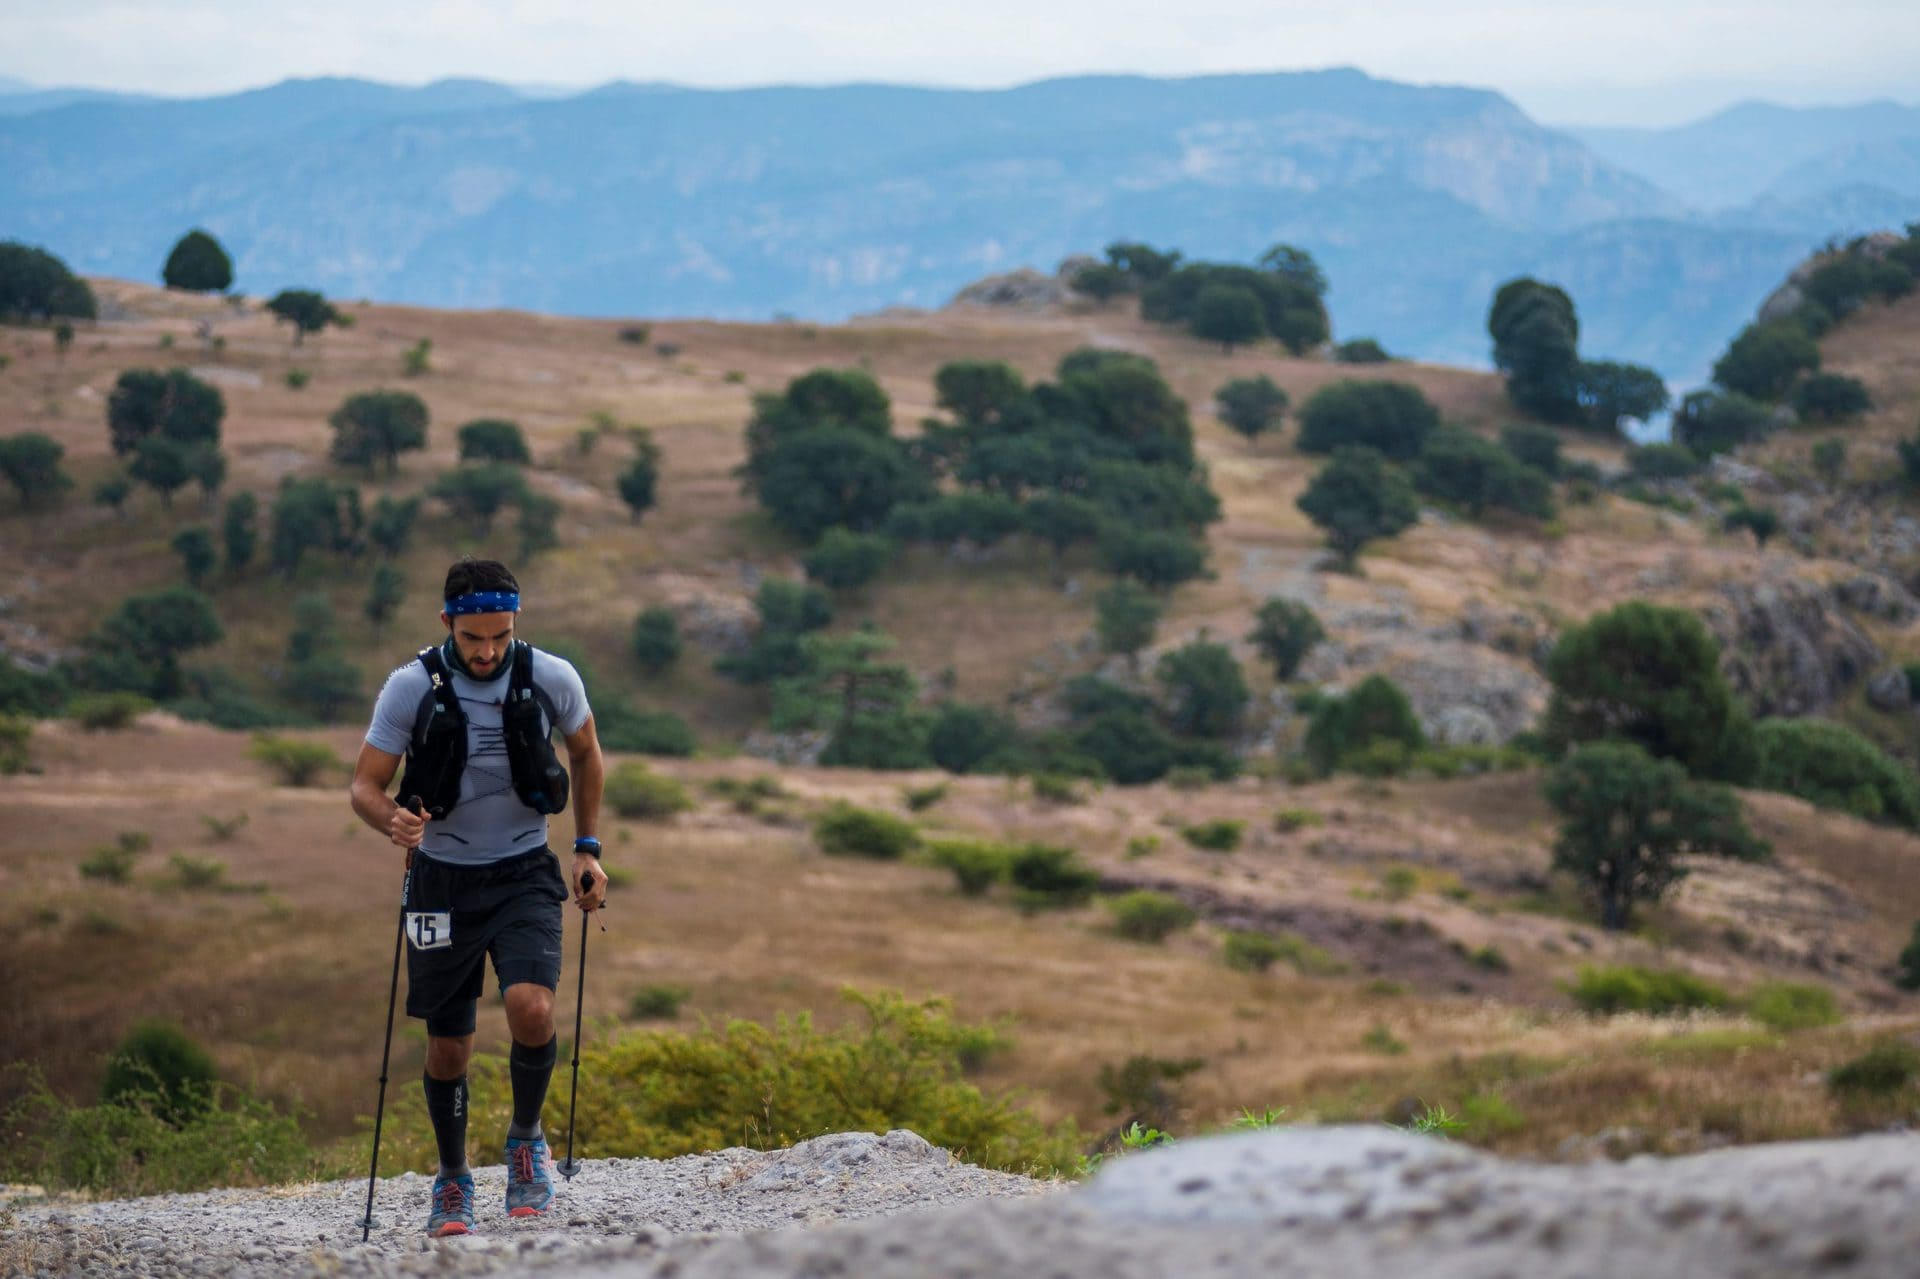 Ultra X Mex­ico 2019: Race Director's Report